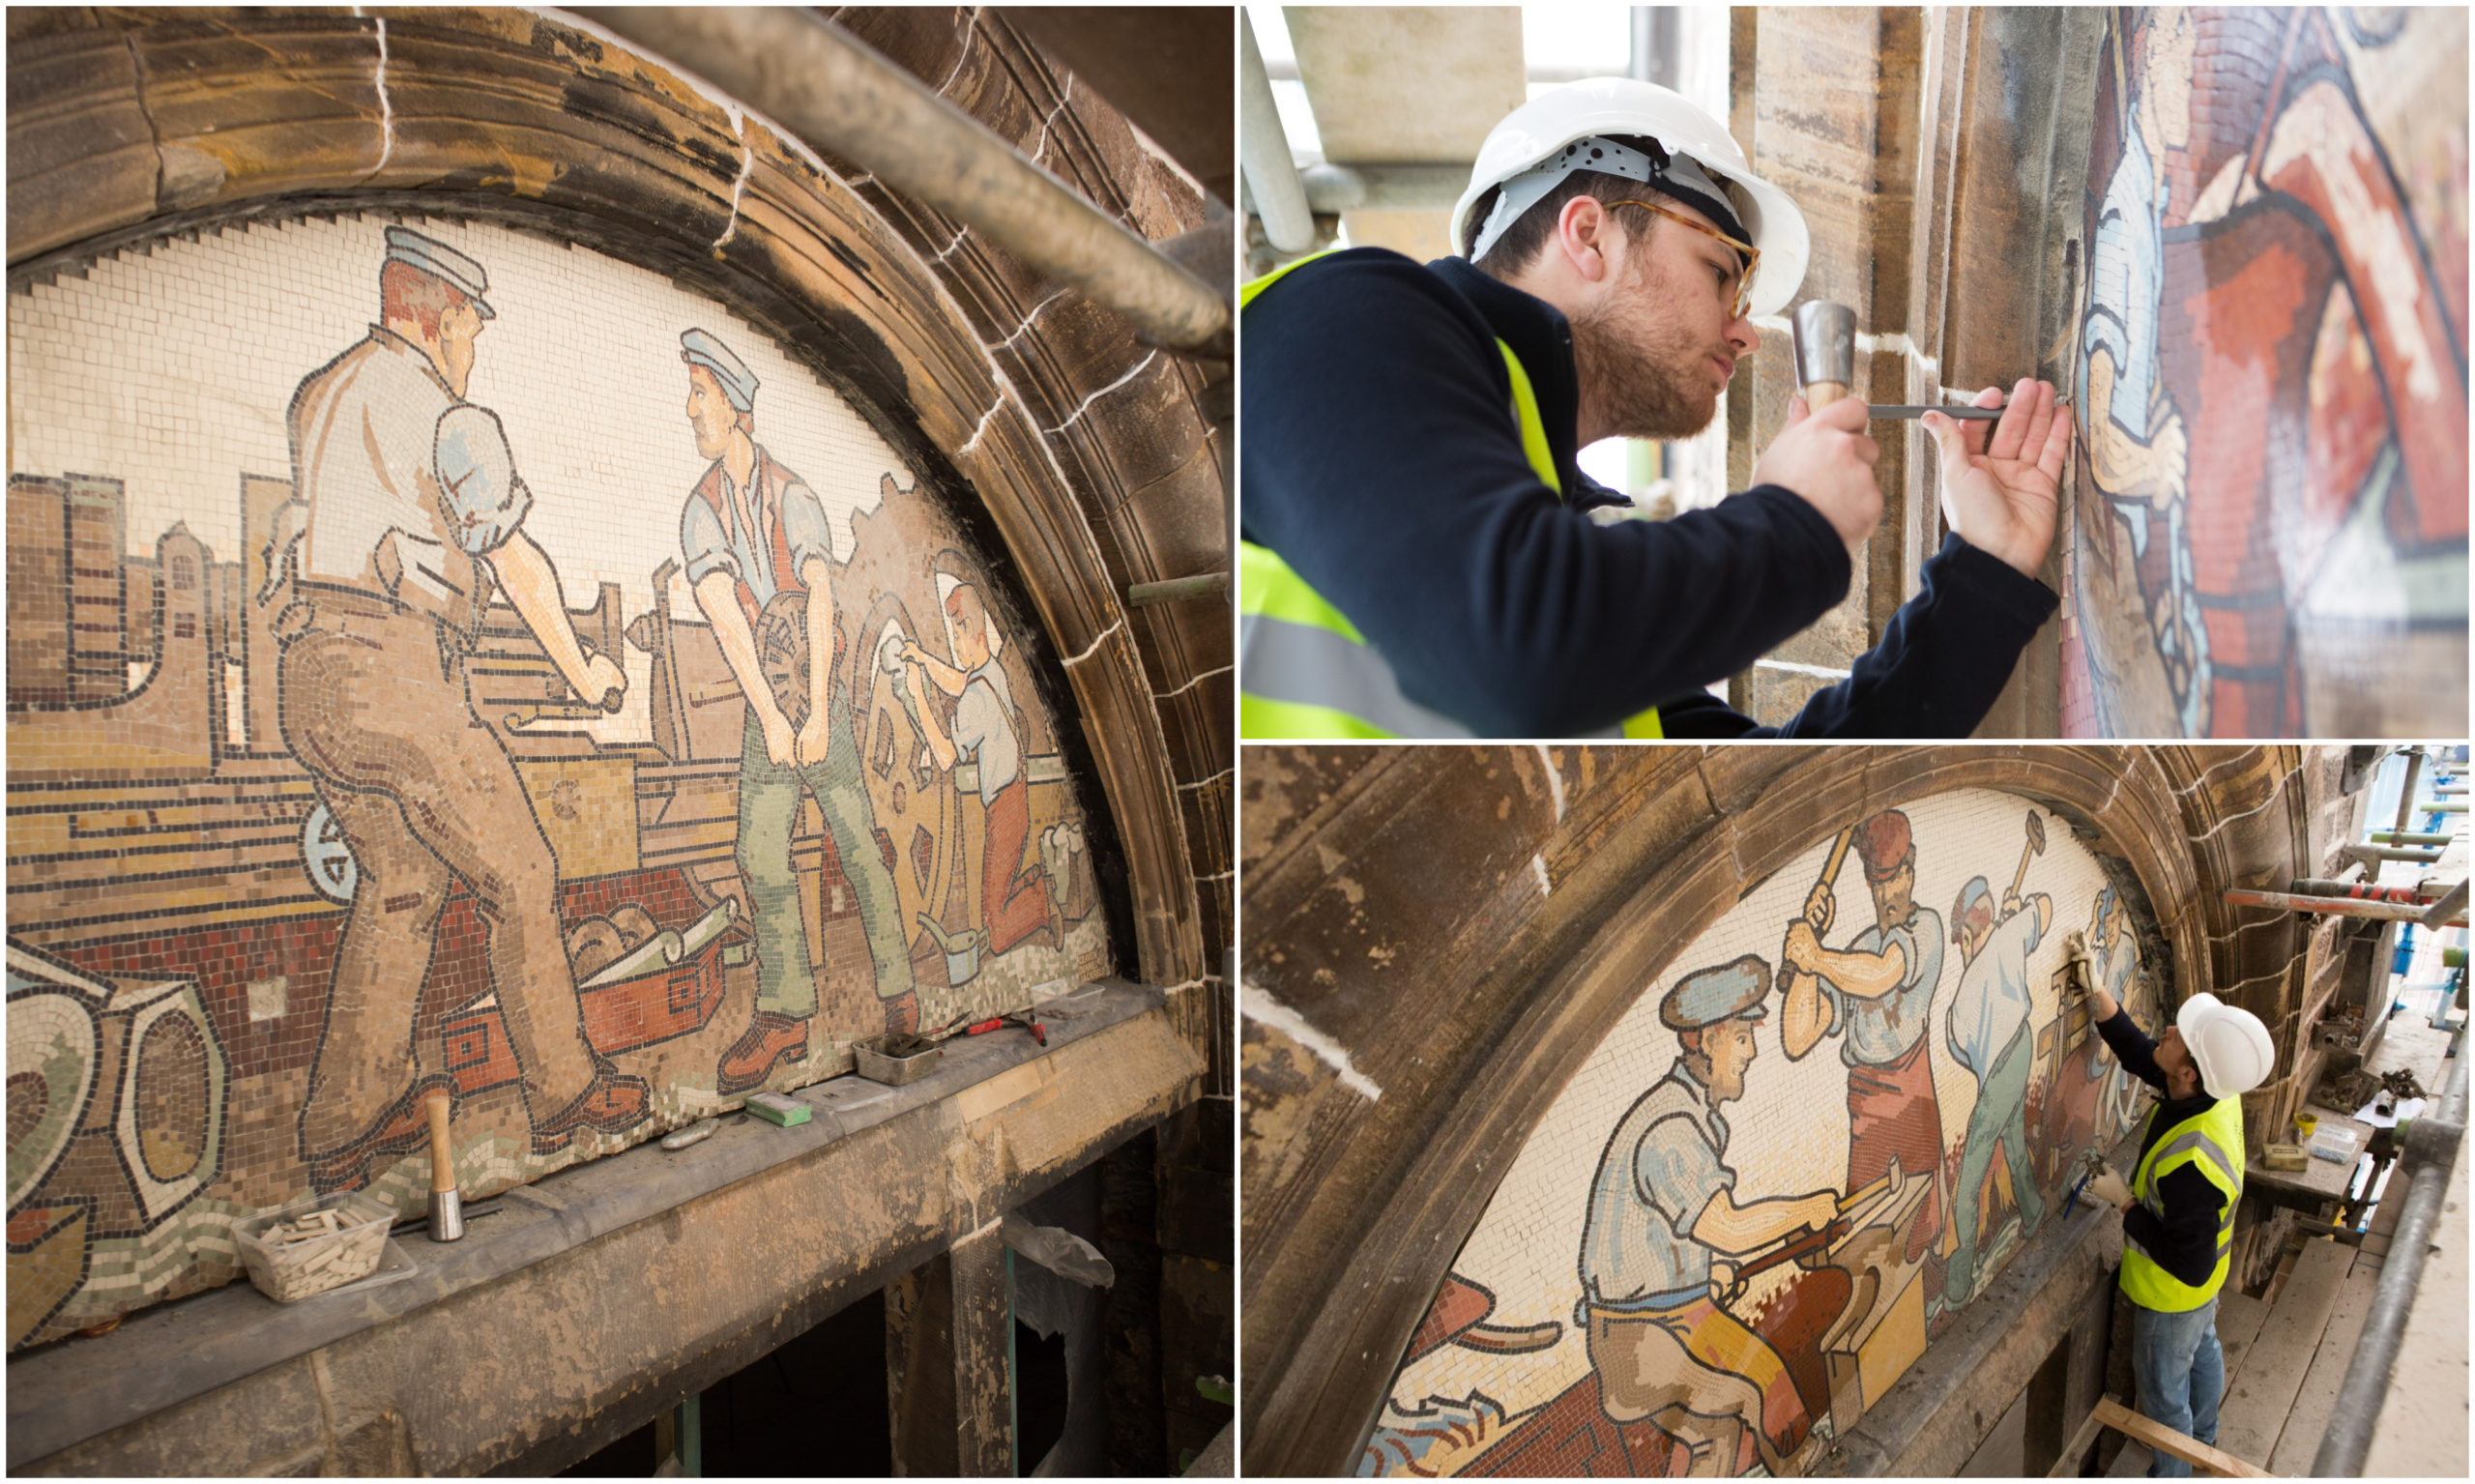 The mosaics at 96 Academy Street have been restored with precise detail